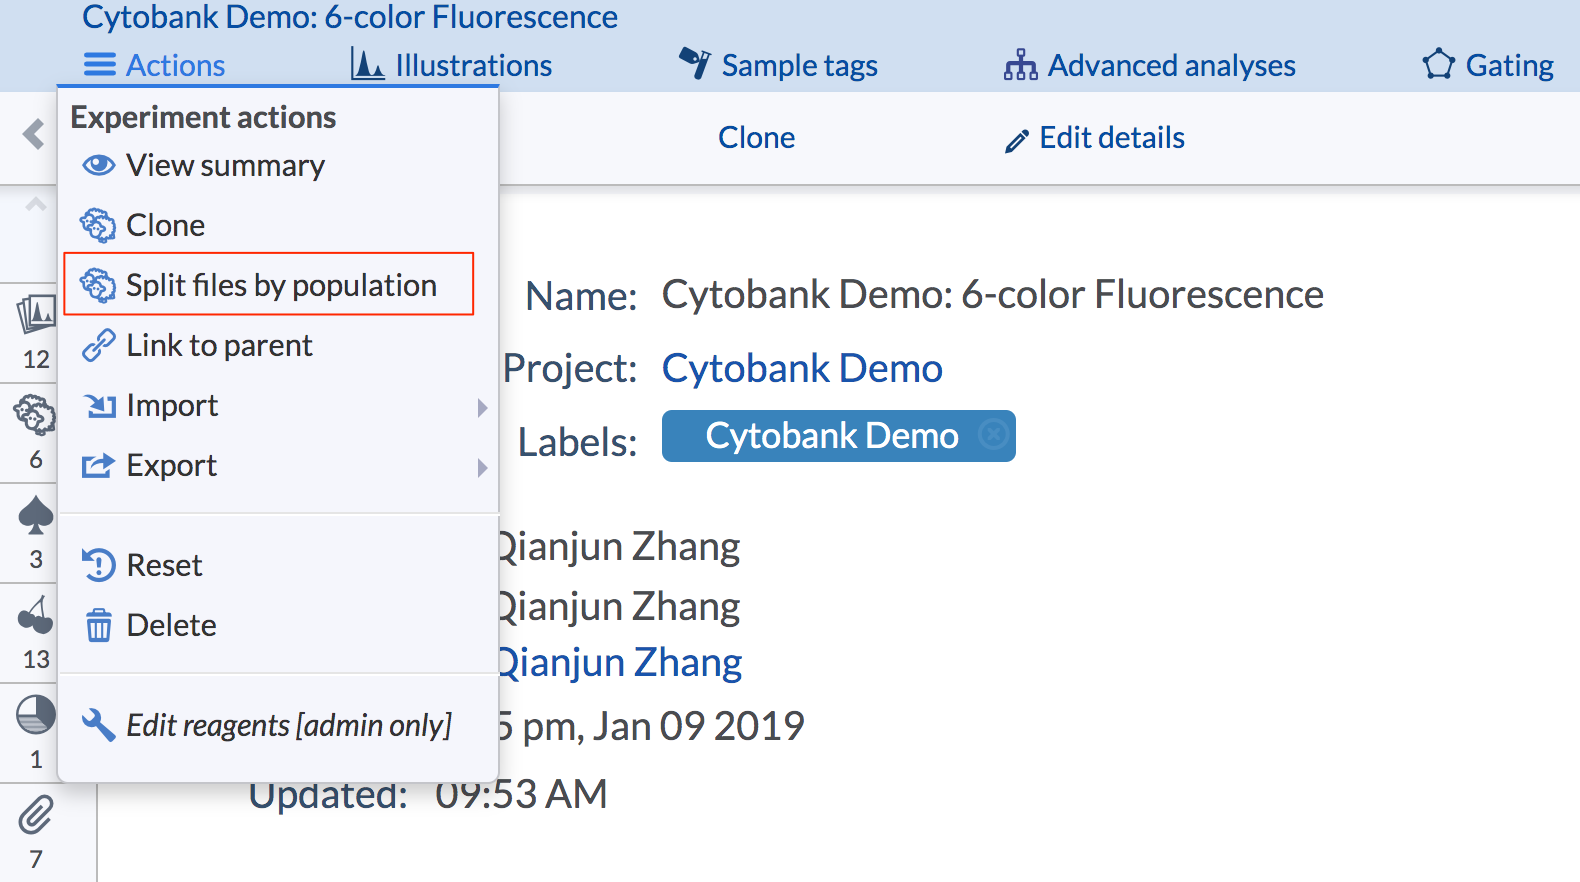 Cytobank_Demo__6-color_Fluorescence_-_Experiment_Summary_-_Cytobank.png